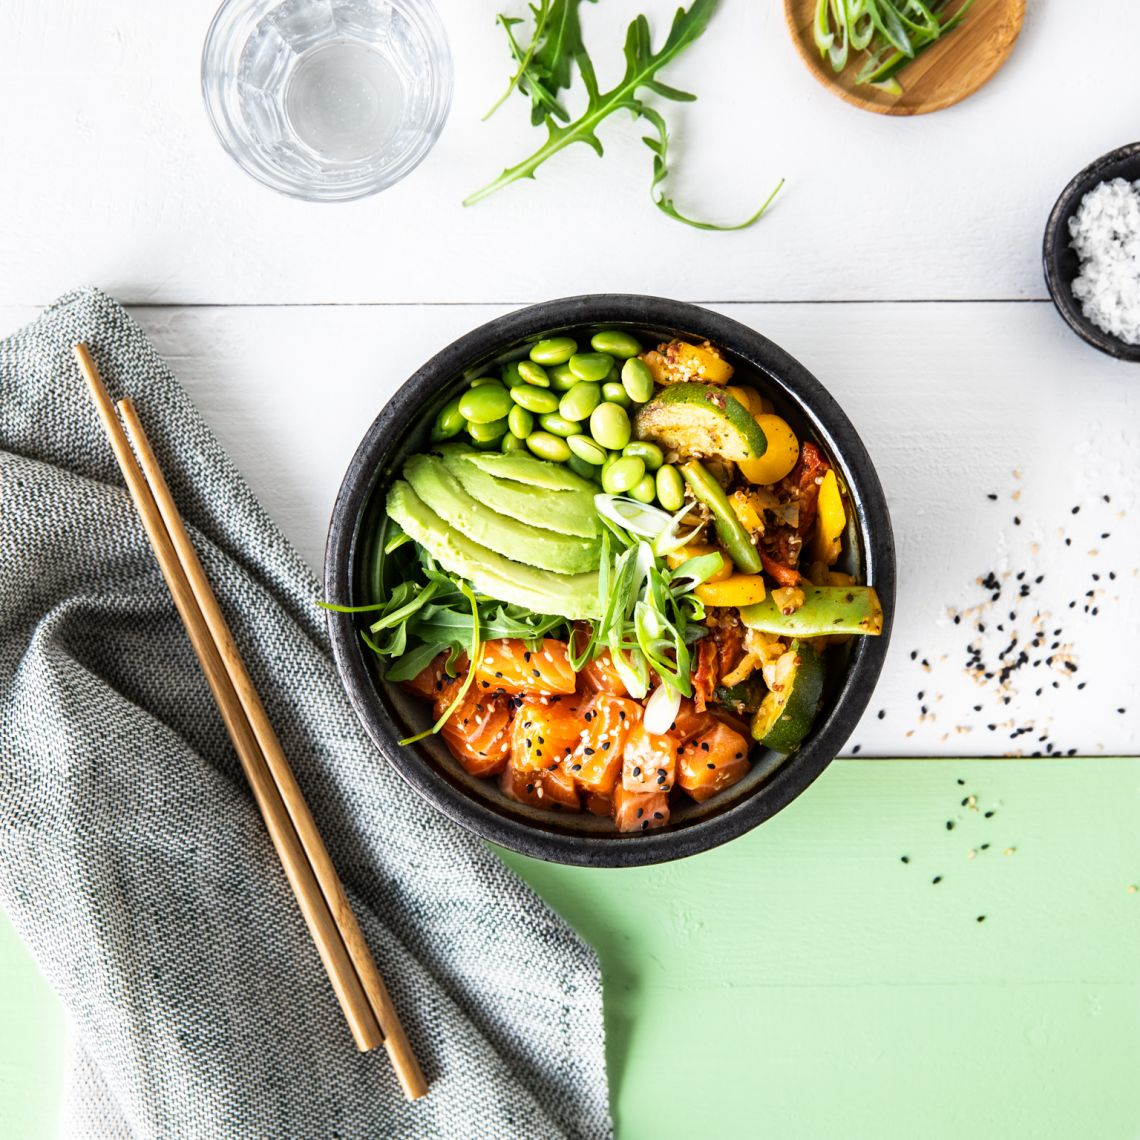 Pop-Up-Restaurant in Hamburg - FRoSTA - Zucchini-Quinoa Poke Bowl mit Lachs